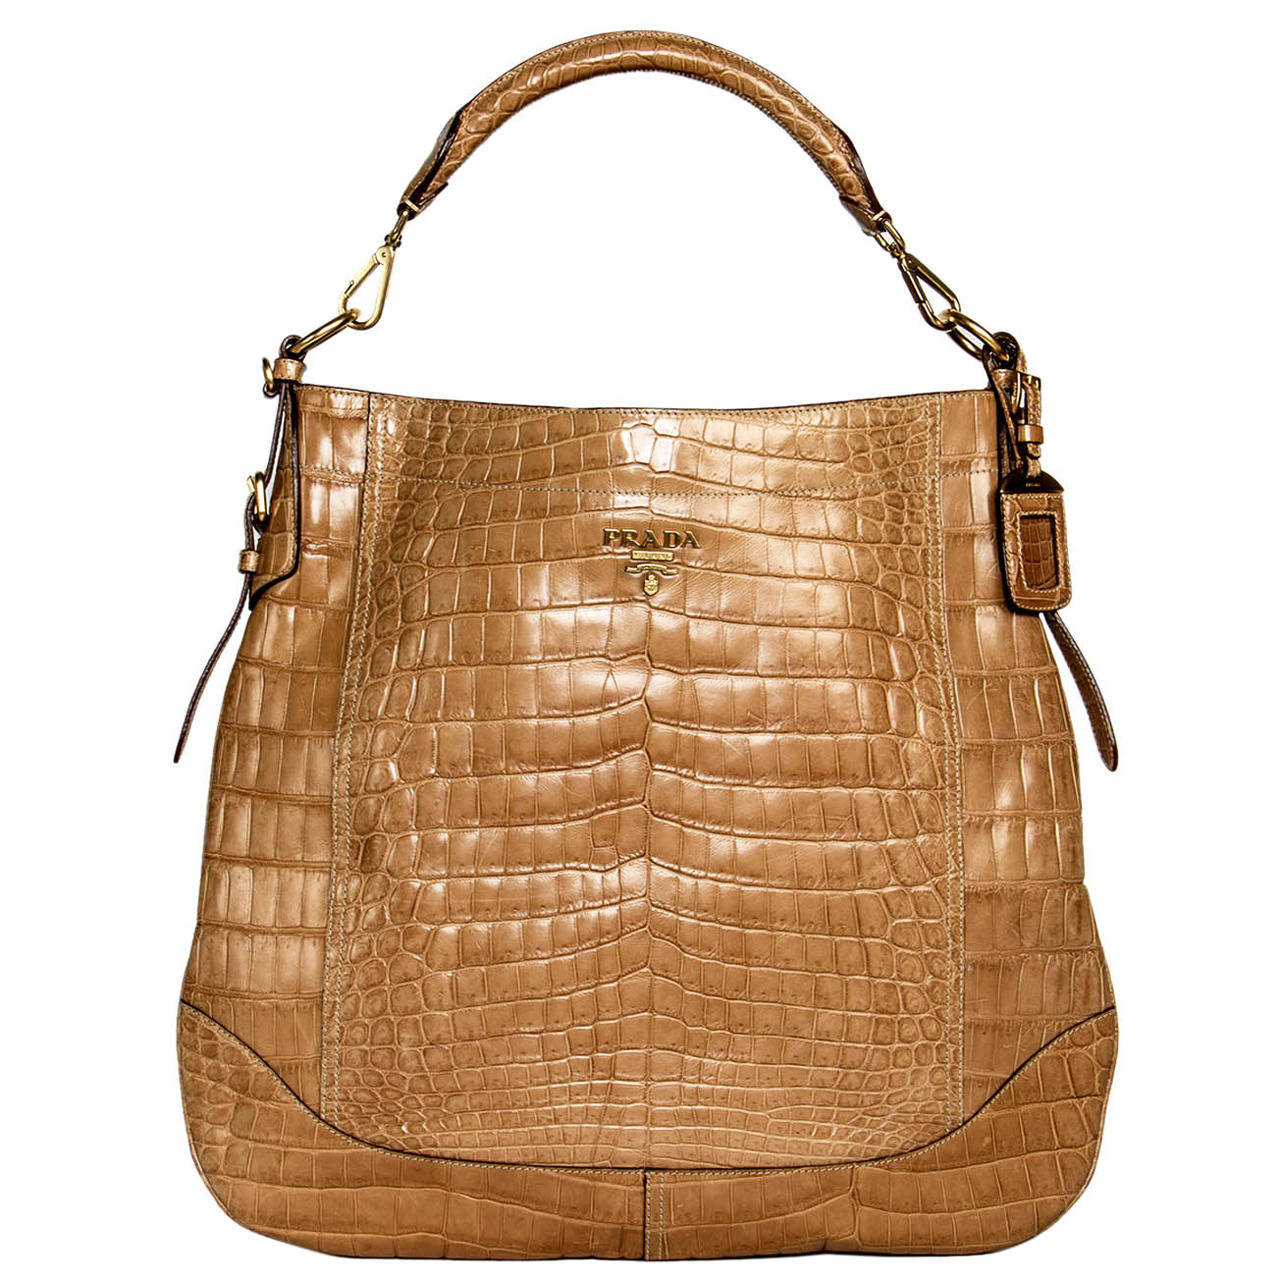 9cce872026f2 Prada Tan Crocodile Bag at 1stdibs